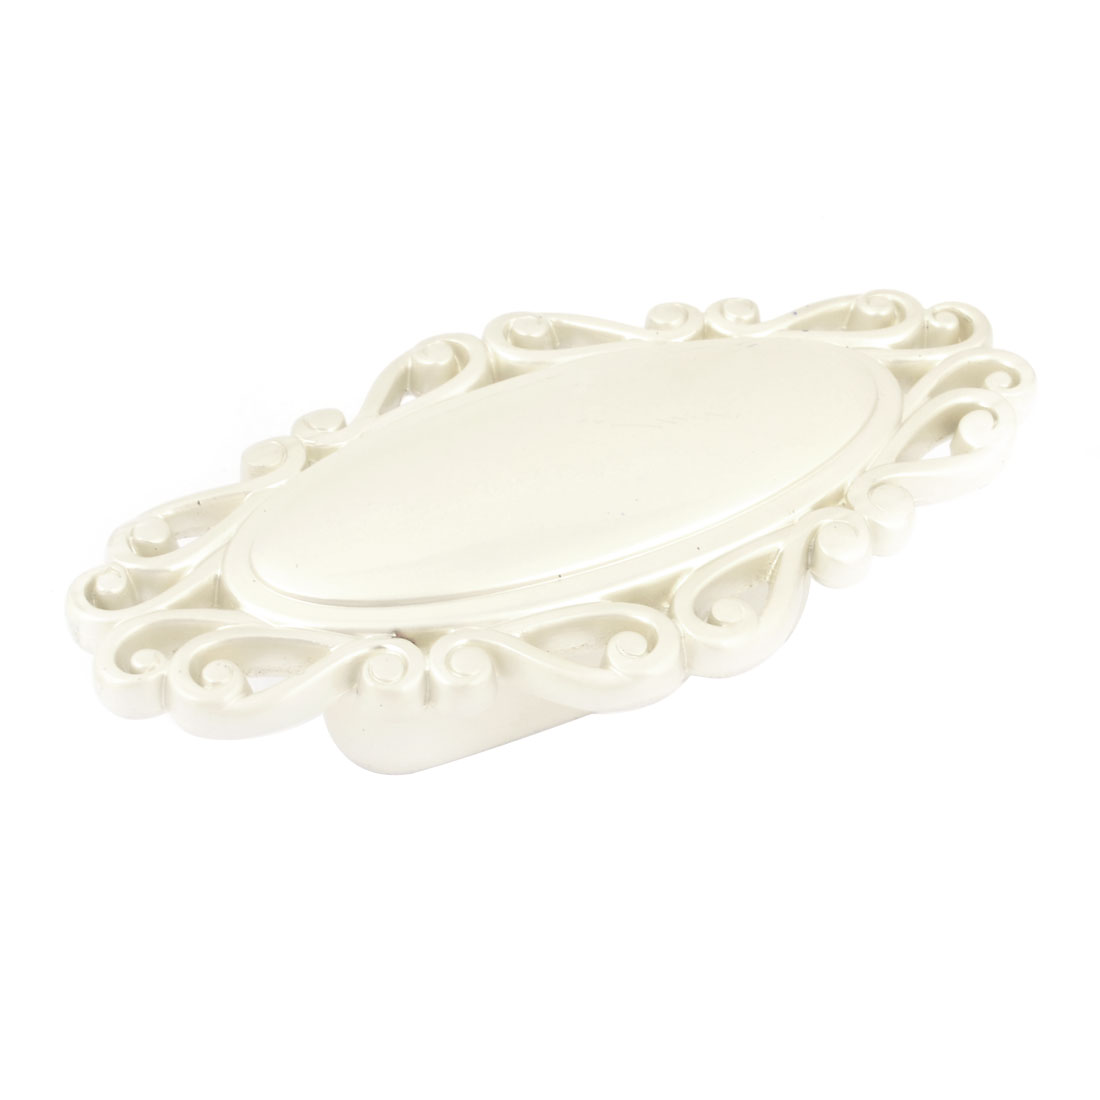 Flower Shaped Frame Ivory White Metal Drawer Door Pull Handle Knob 3.1""